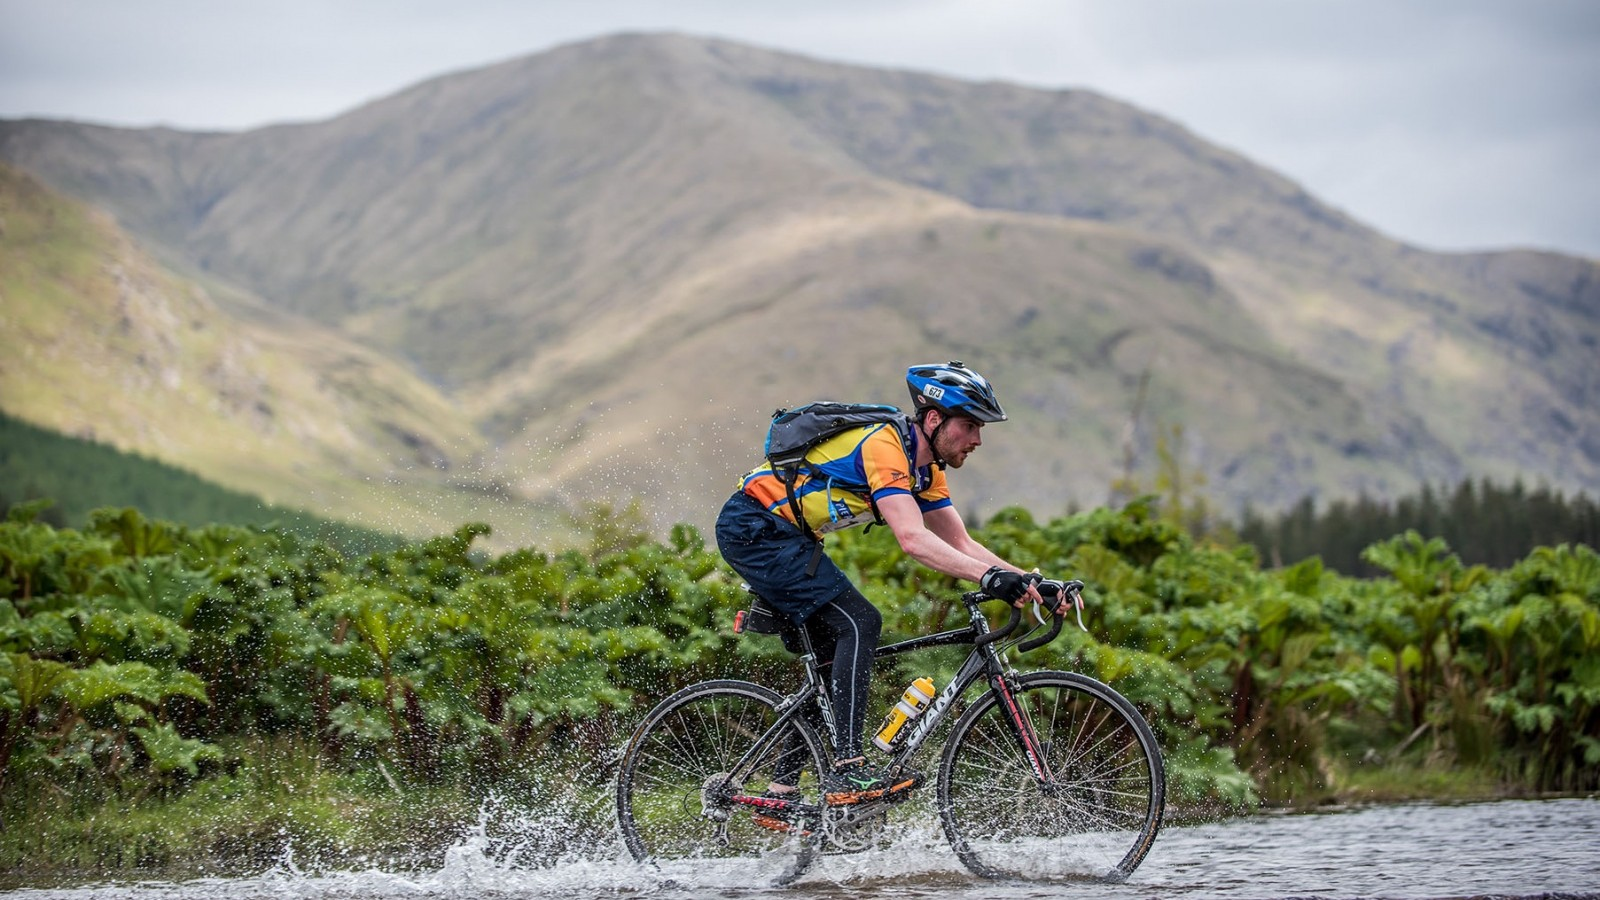 connemara-adventure-race-cycle.jpg